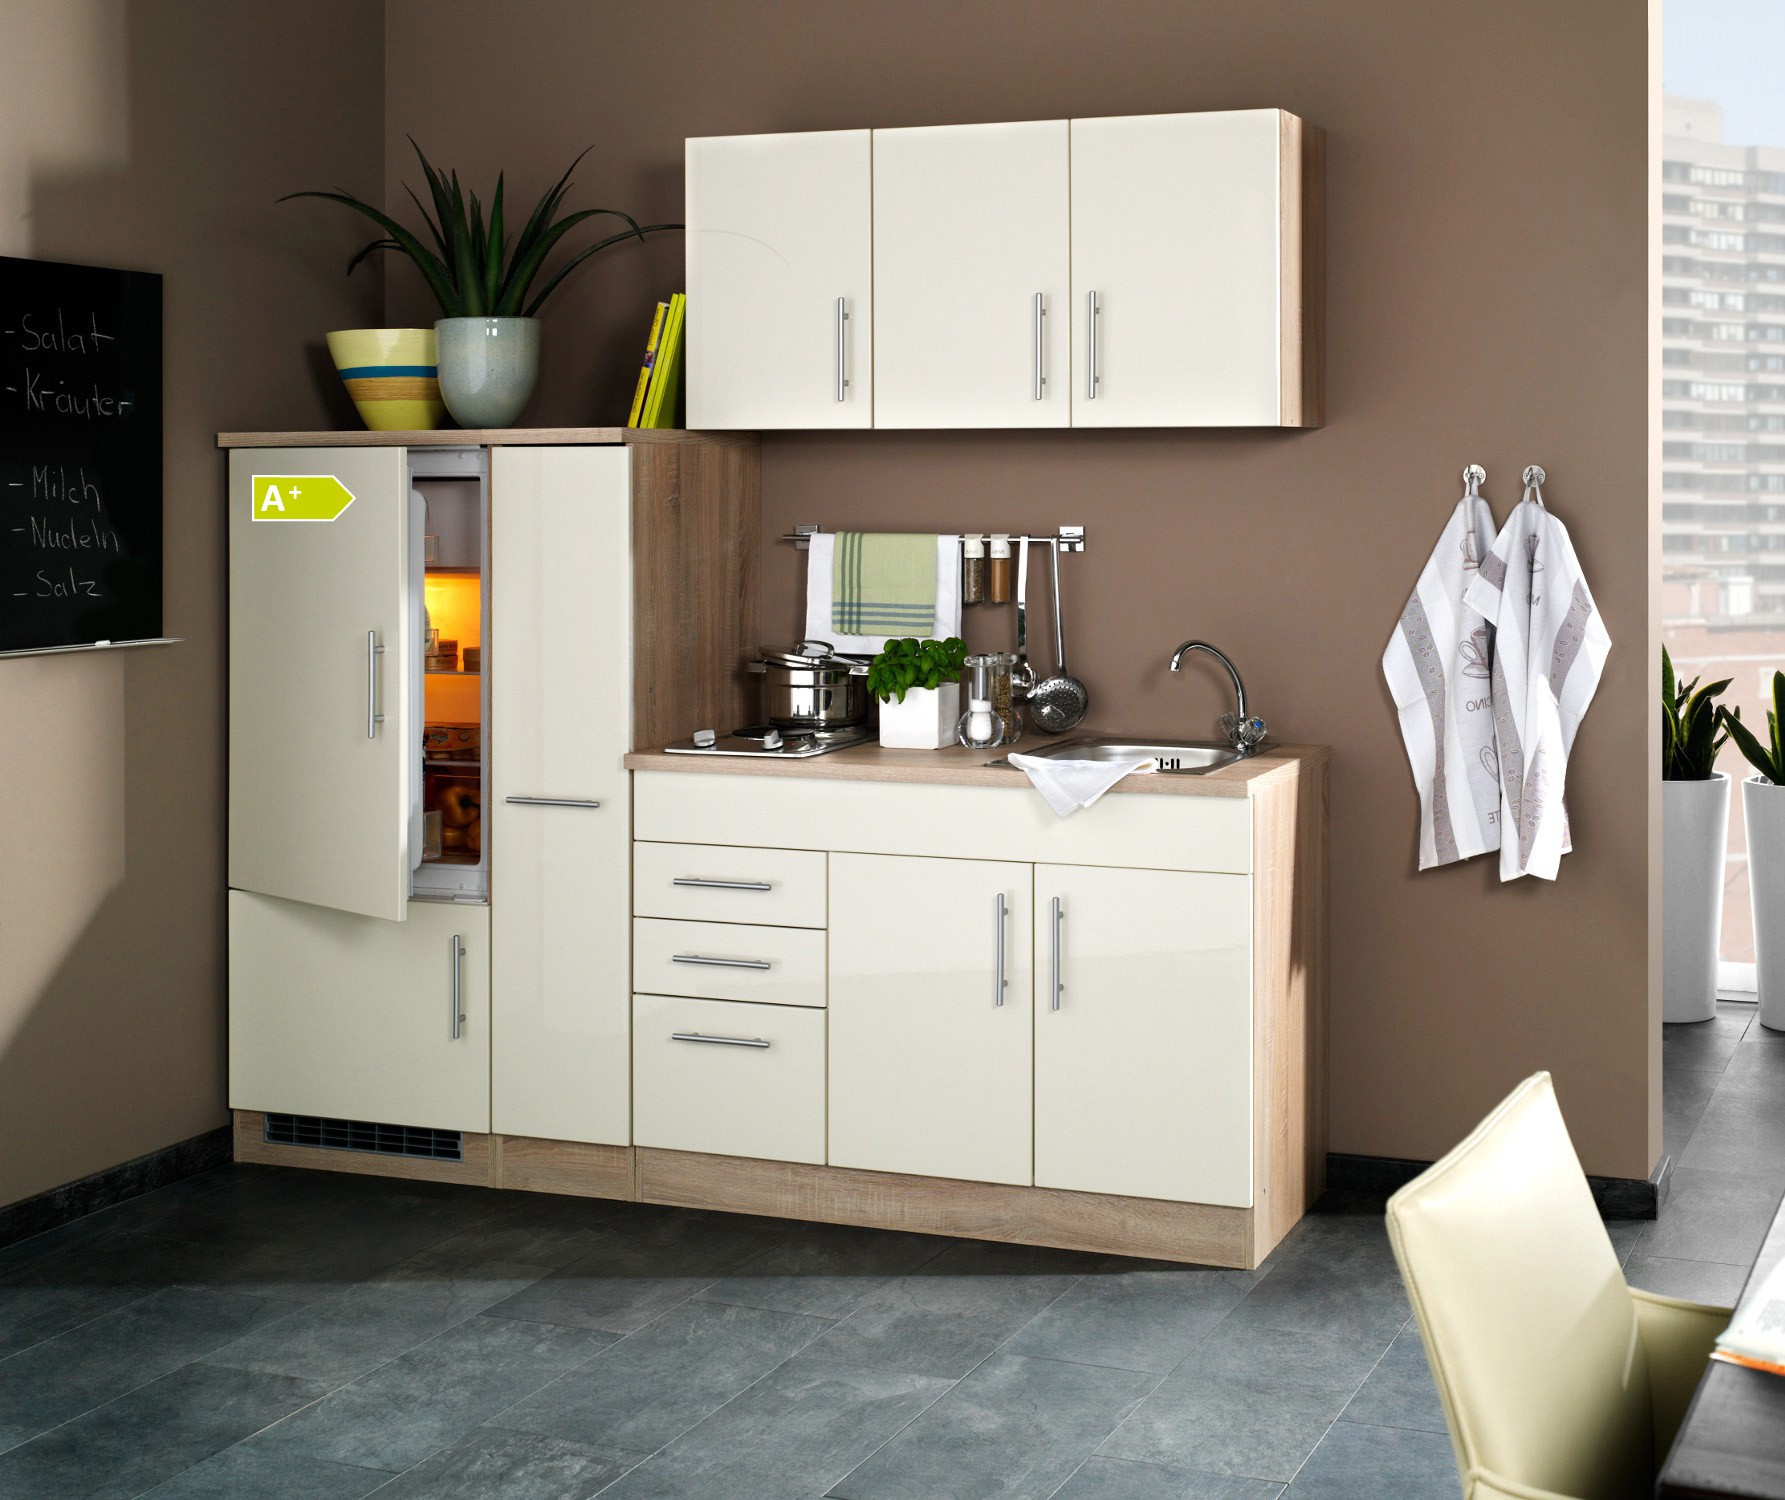 singlek che berlin mit k hlschrank breite 210 cm hochglanz creme eiche sonoma k che. Black Bedroom Furniture Sets. Home Design Ideas